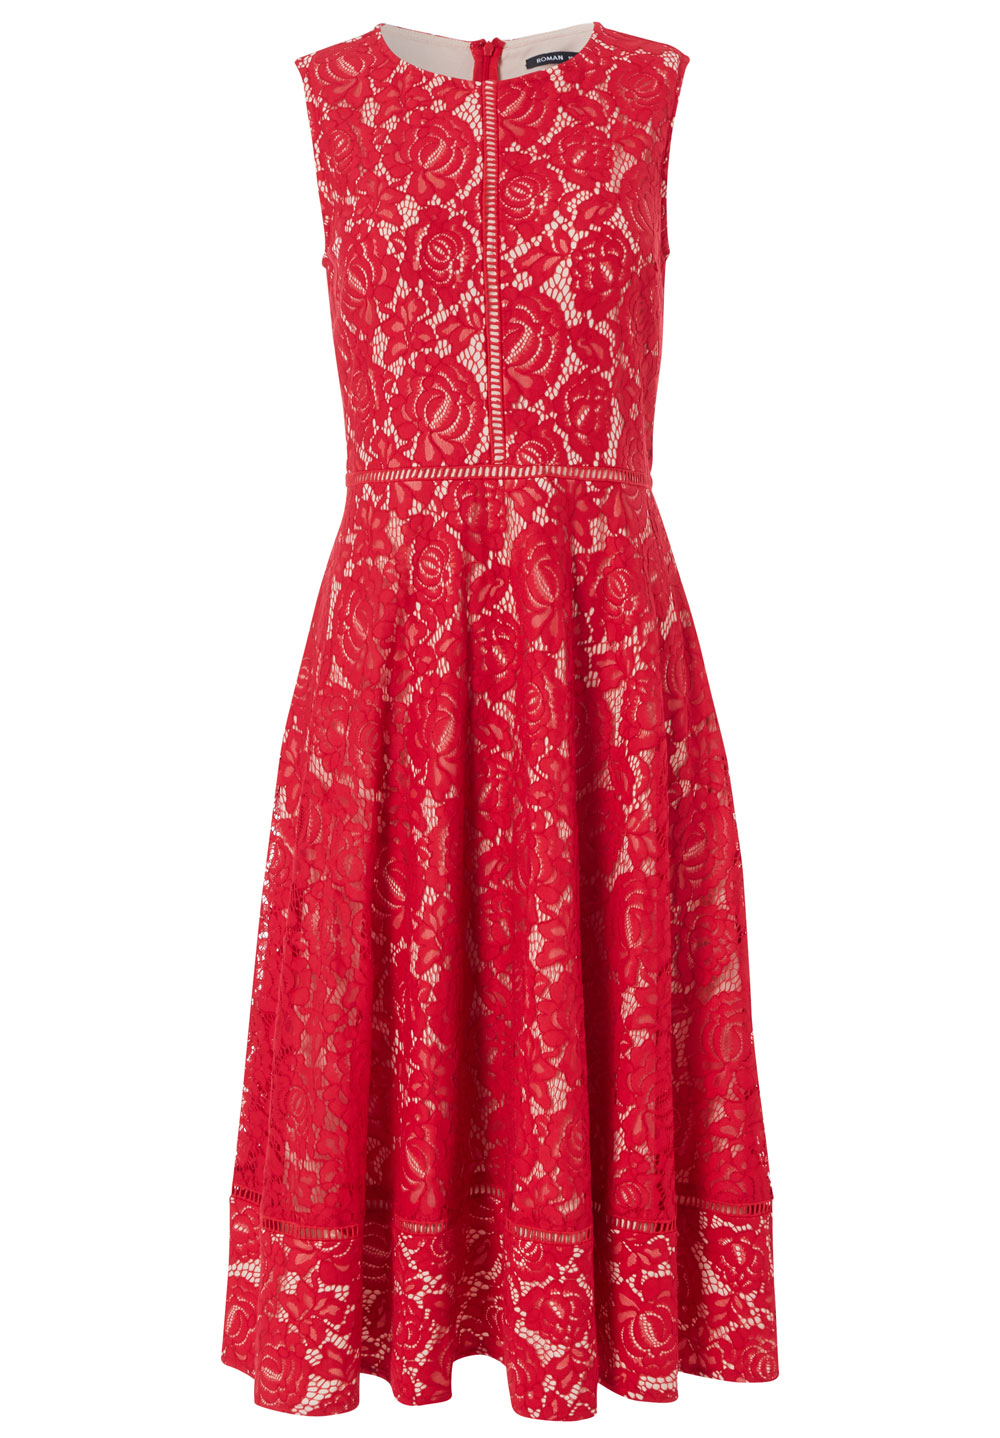 Roman Lace Fit And Flare Lace Midi Dress, £60/AED268.89